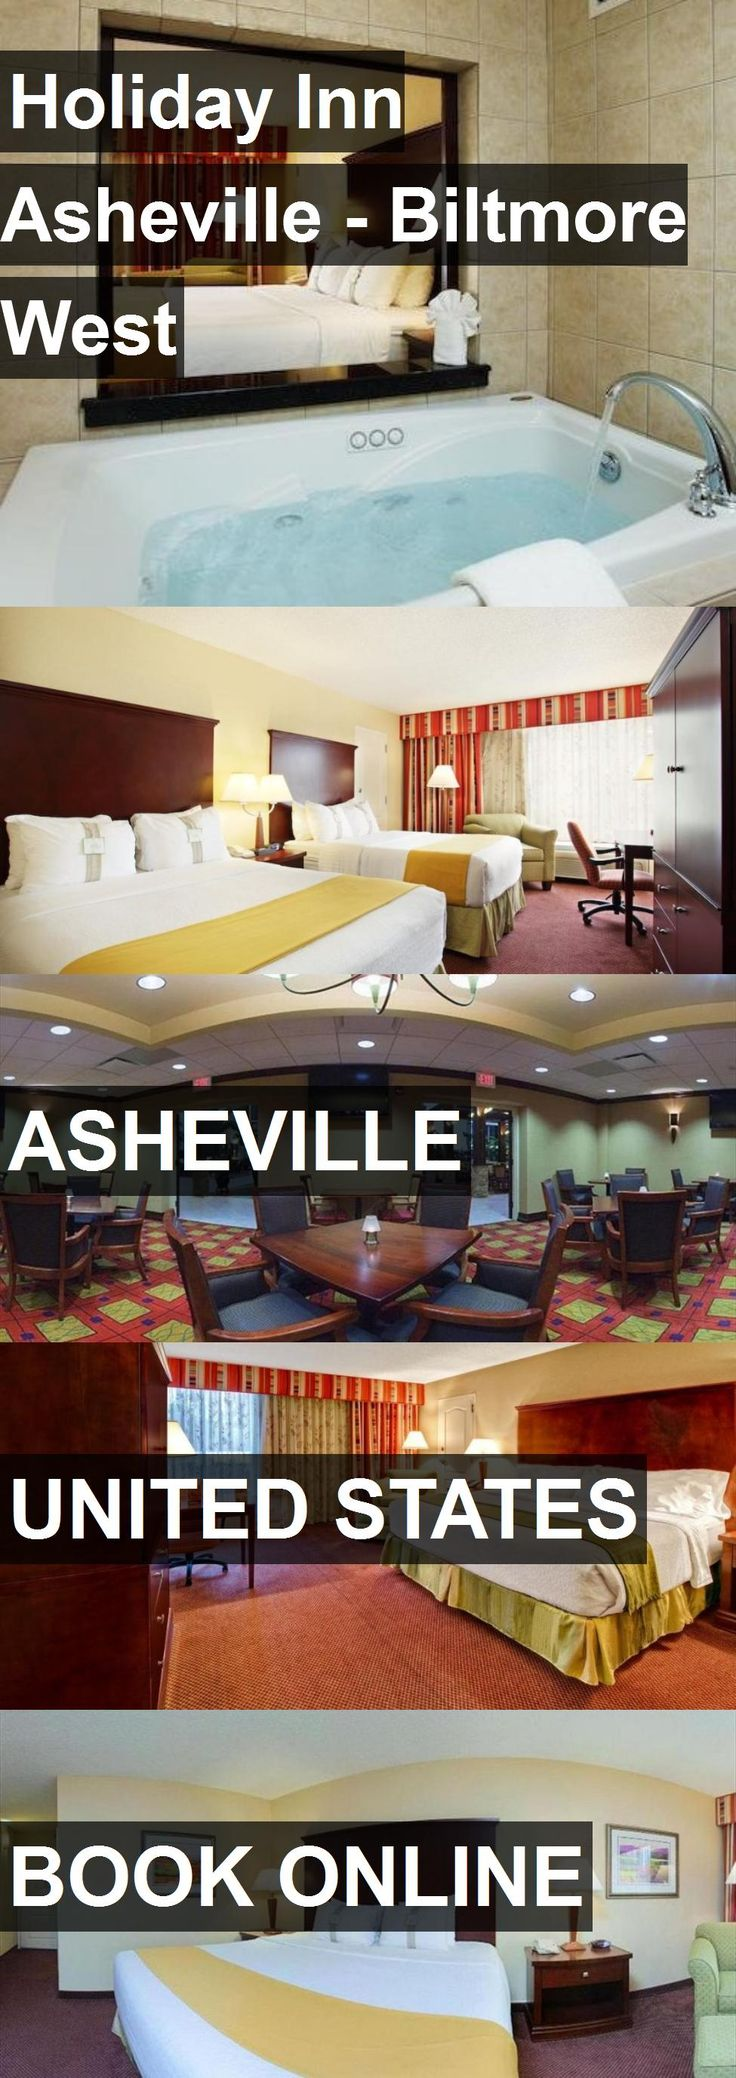 Hotel Holiday Inn Asheville - Biltmore West in Asheville, United States. For more information, photos, reviews and best prices please follow the link. #UnitedStates #Asheville #HolidayInnAsheville-BiltmoreWest #hotel #travel #vacation